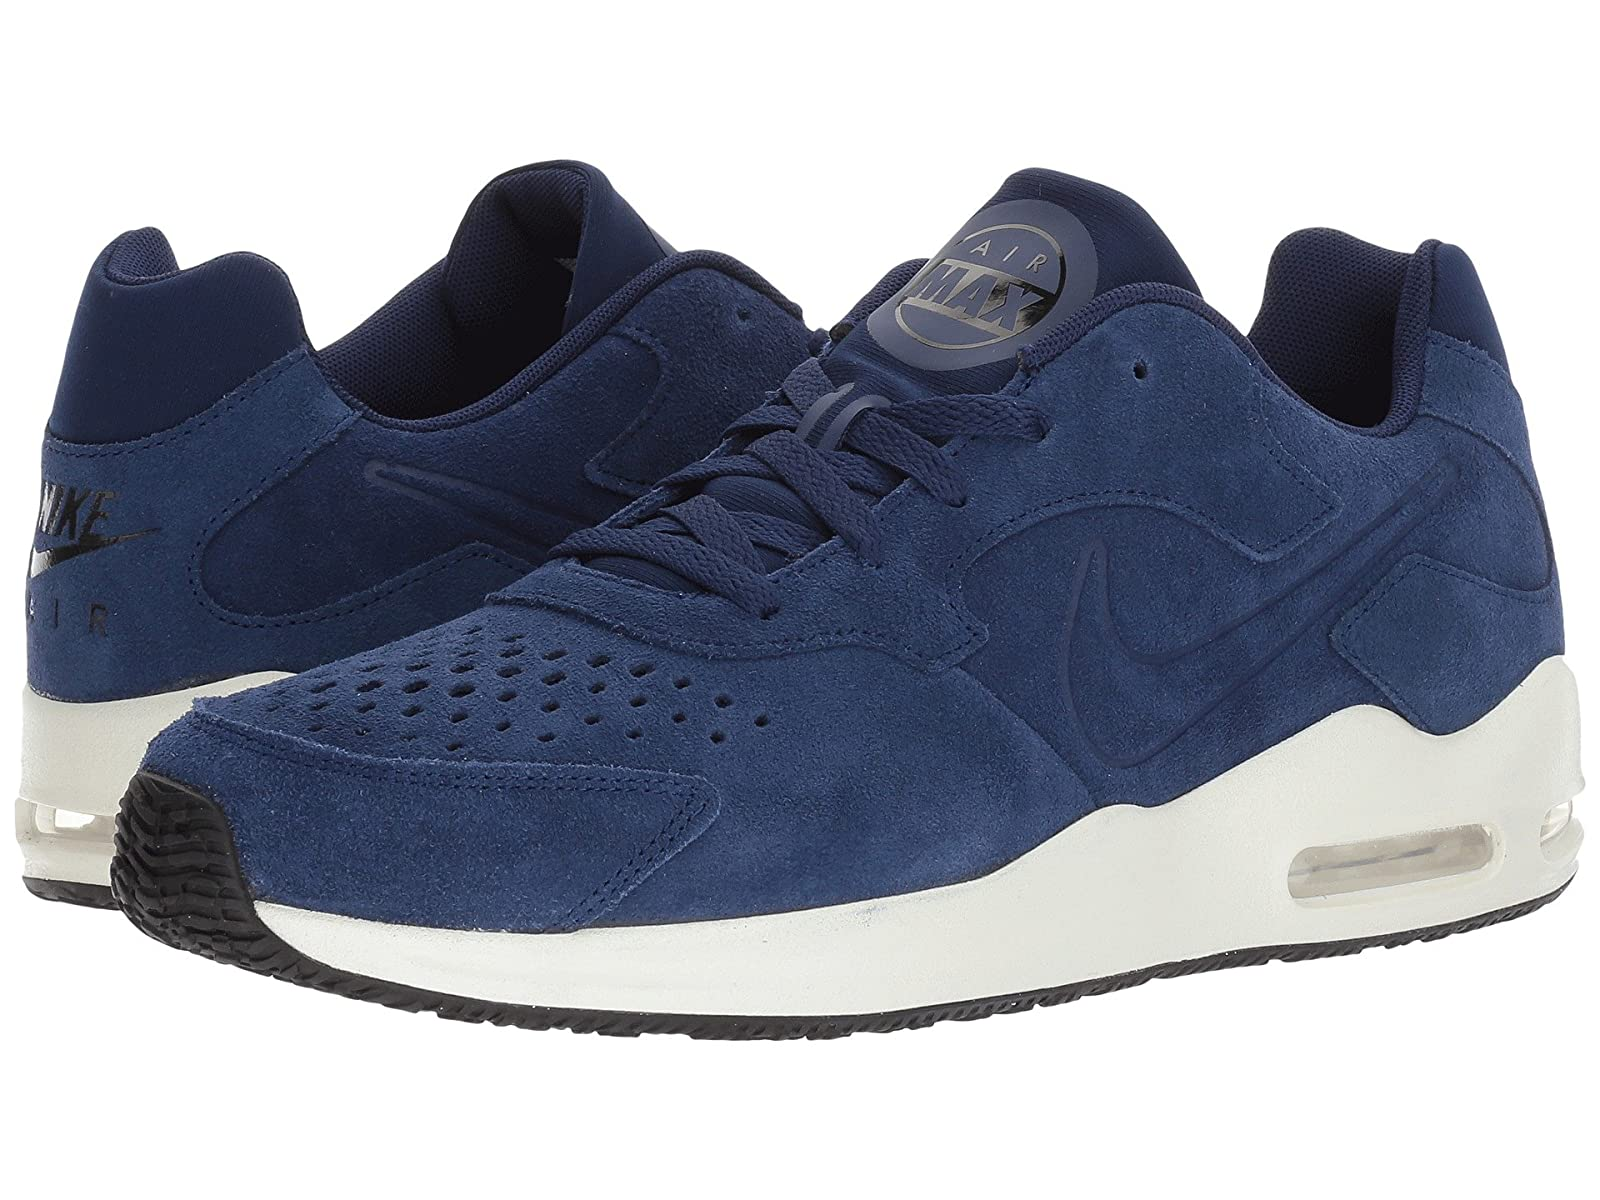 Nike Air Max GuileCheap and distinctive eye-catching shoes